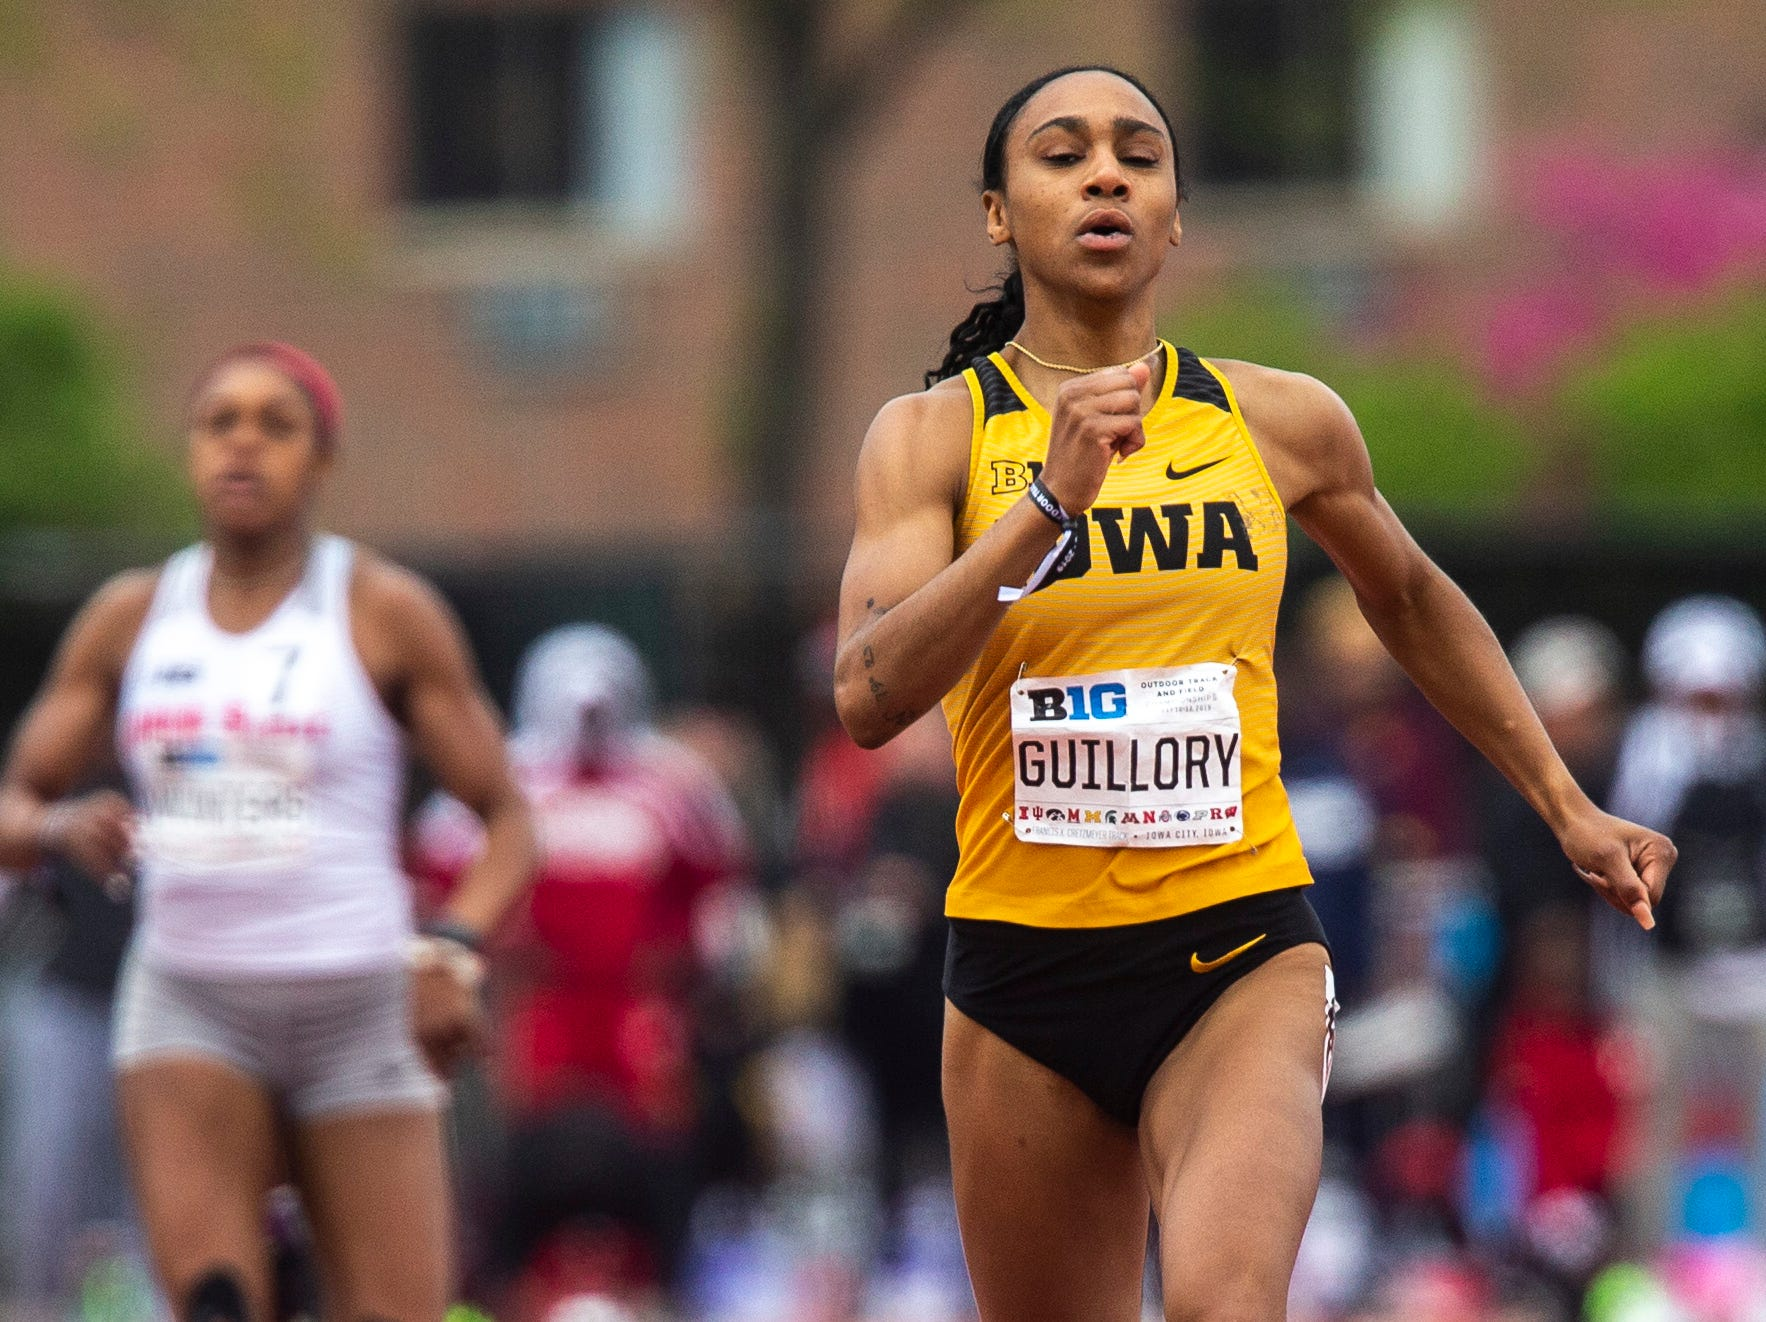 Iowa senior Briana Guillory competes in the 400 meter finals during the final day of Big Ten track and field outdoor championships, Sunday, May 12, 2019, at Francis X. Cretzmeyer Track on the University of Iowa campus in Iowa City, Iowa. Guillory finished second, with a time of 52.66.